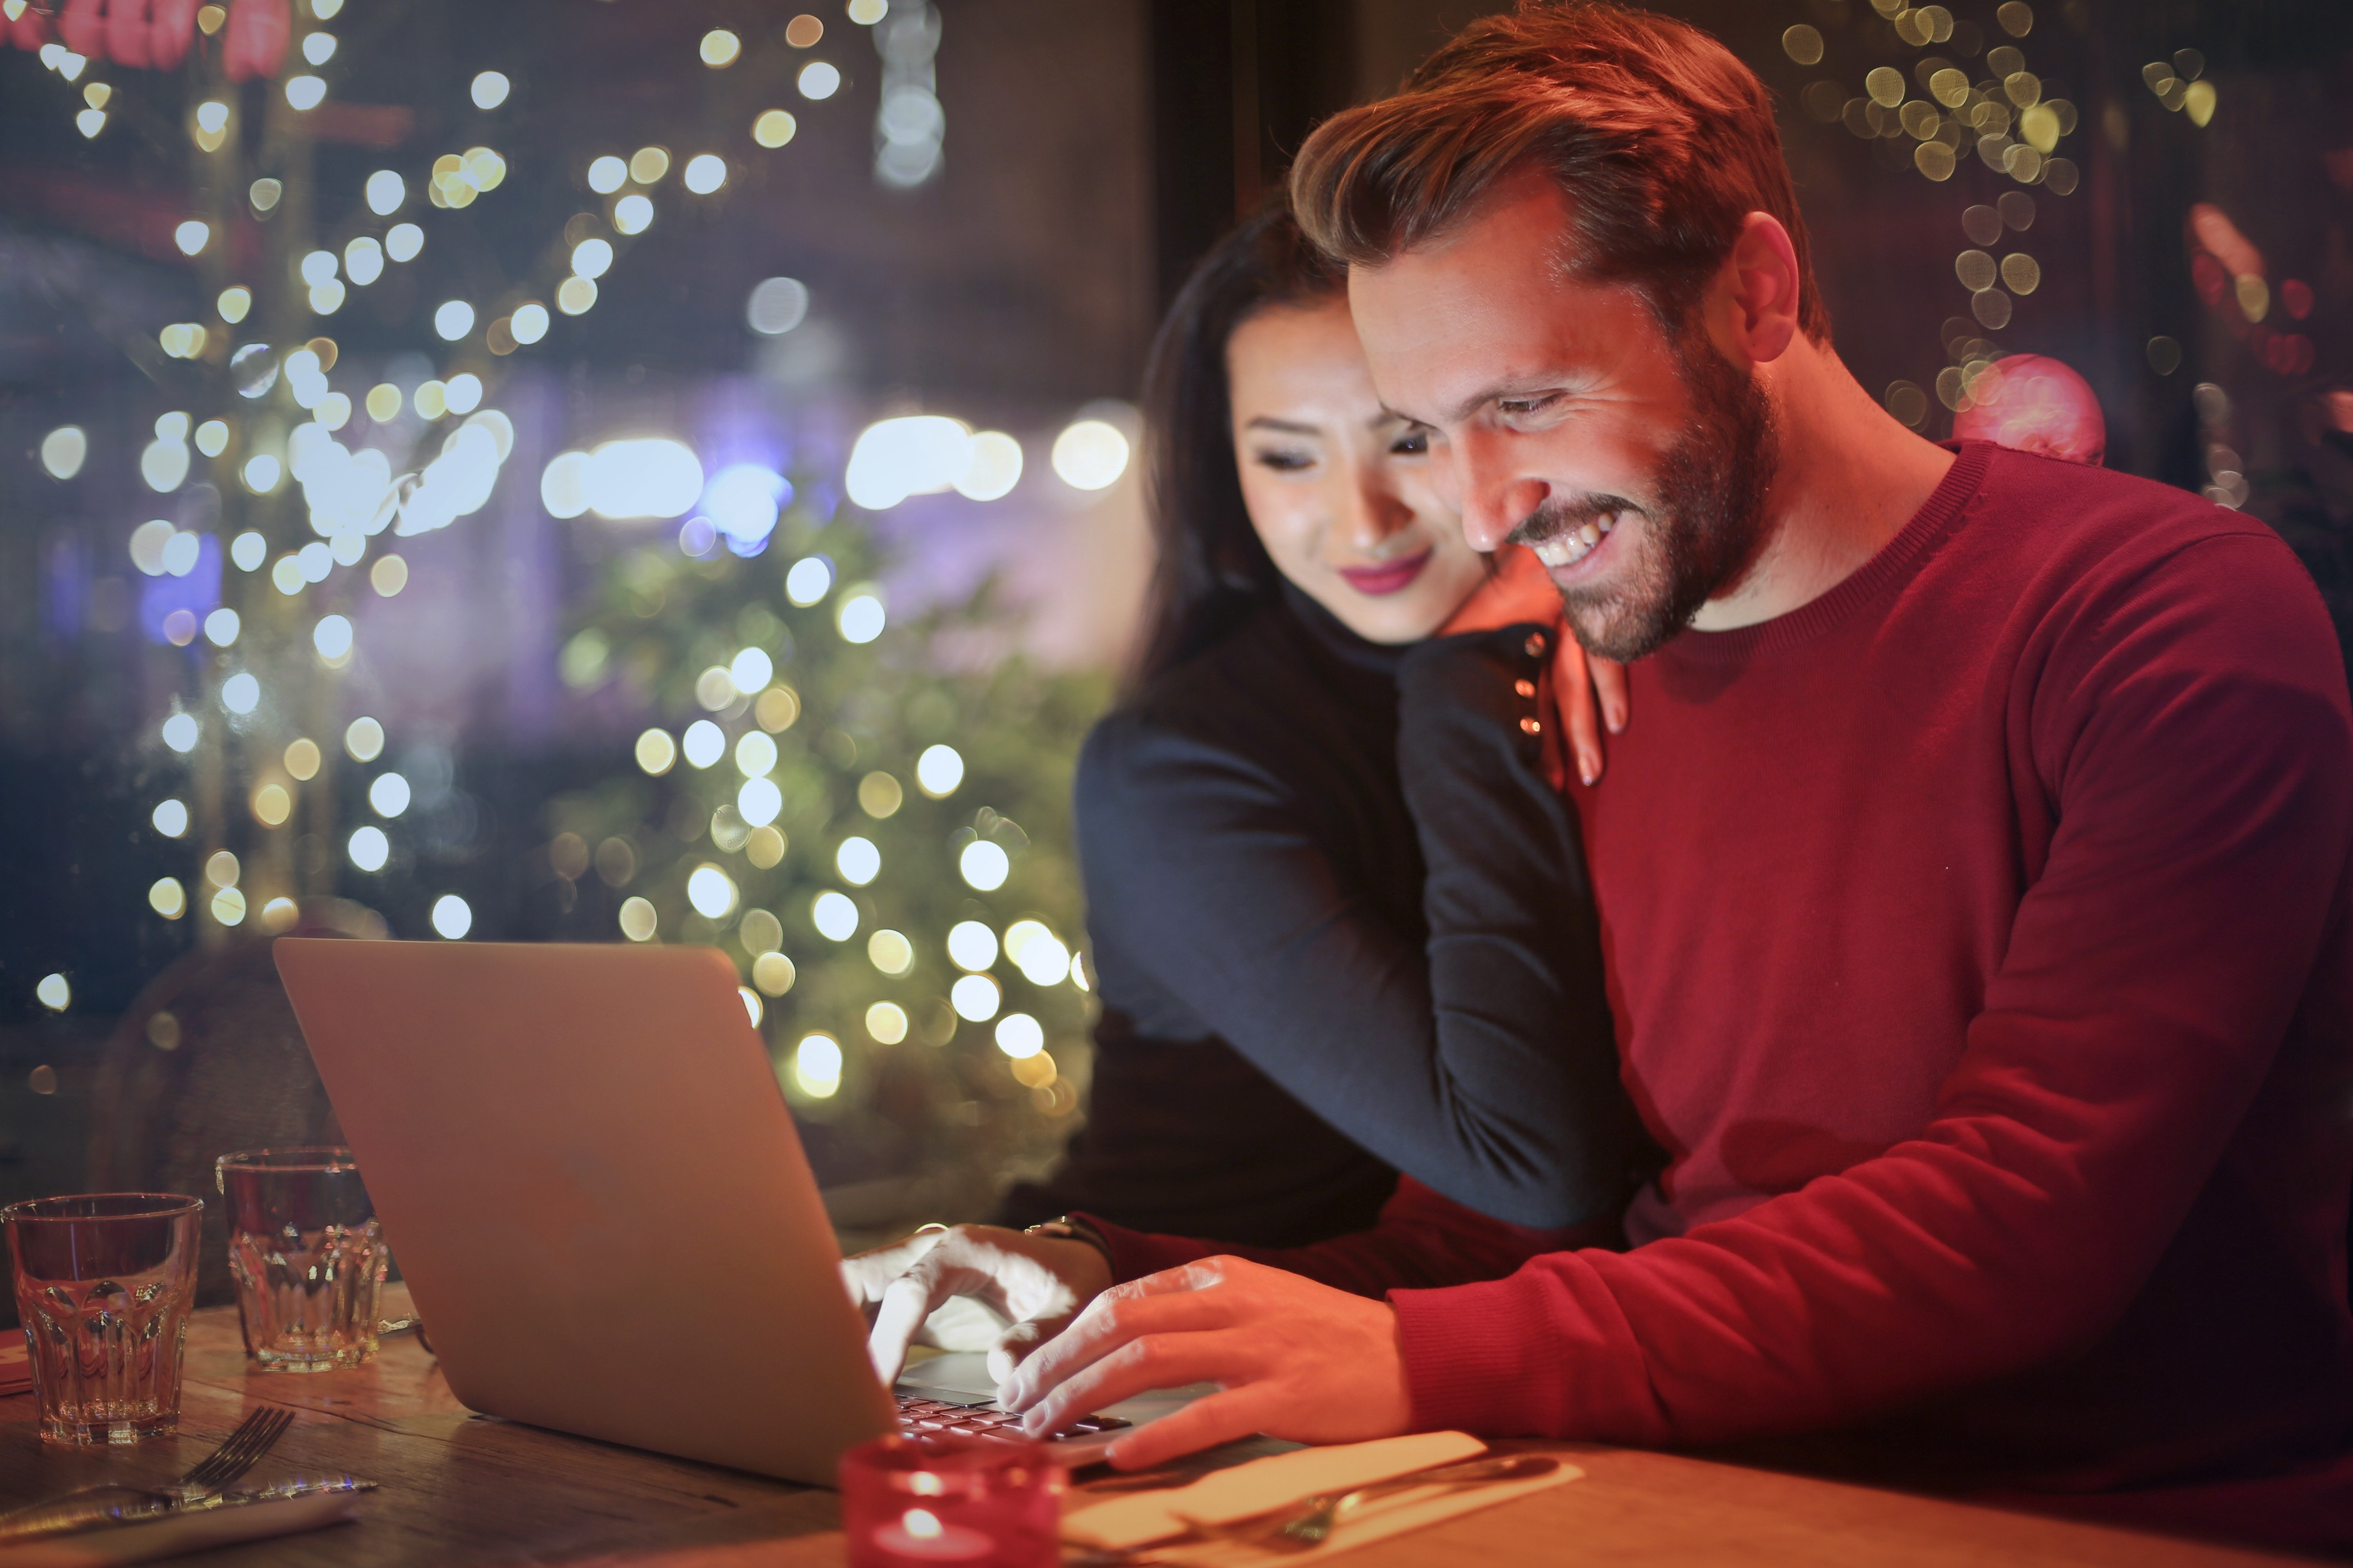 Interracial couple at a restaurant with laptop opened. The woman leans on man's shoulder. Fairy lights in the distance.